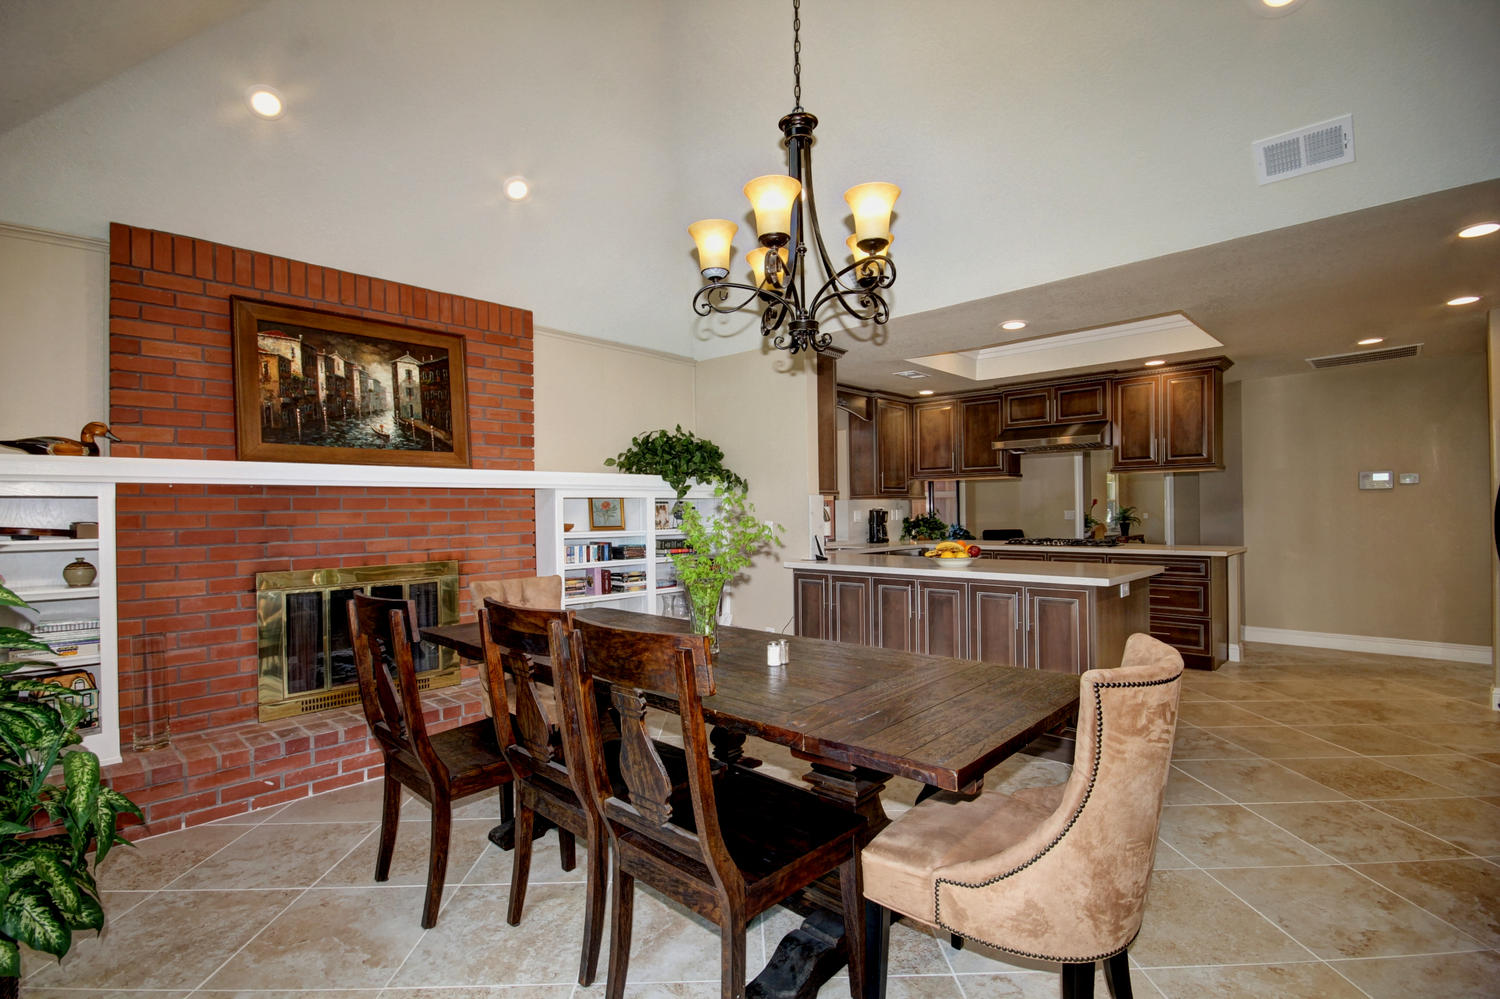 1105 Nob Hill Ct Roseville CA-large-011-10-11-1500x999-72dpi